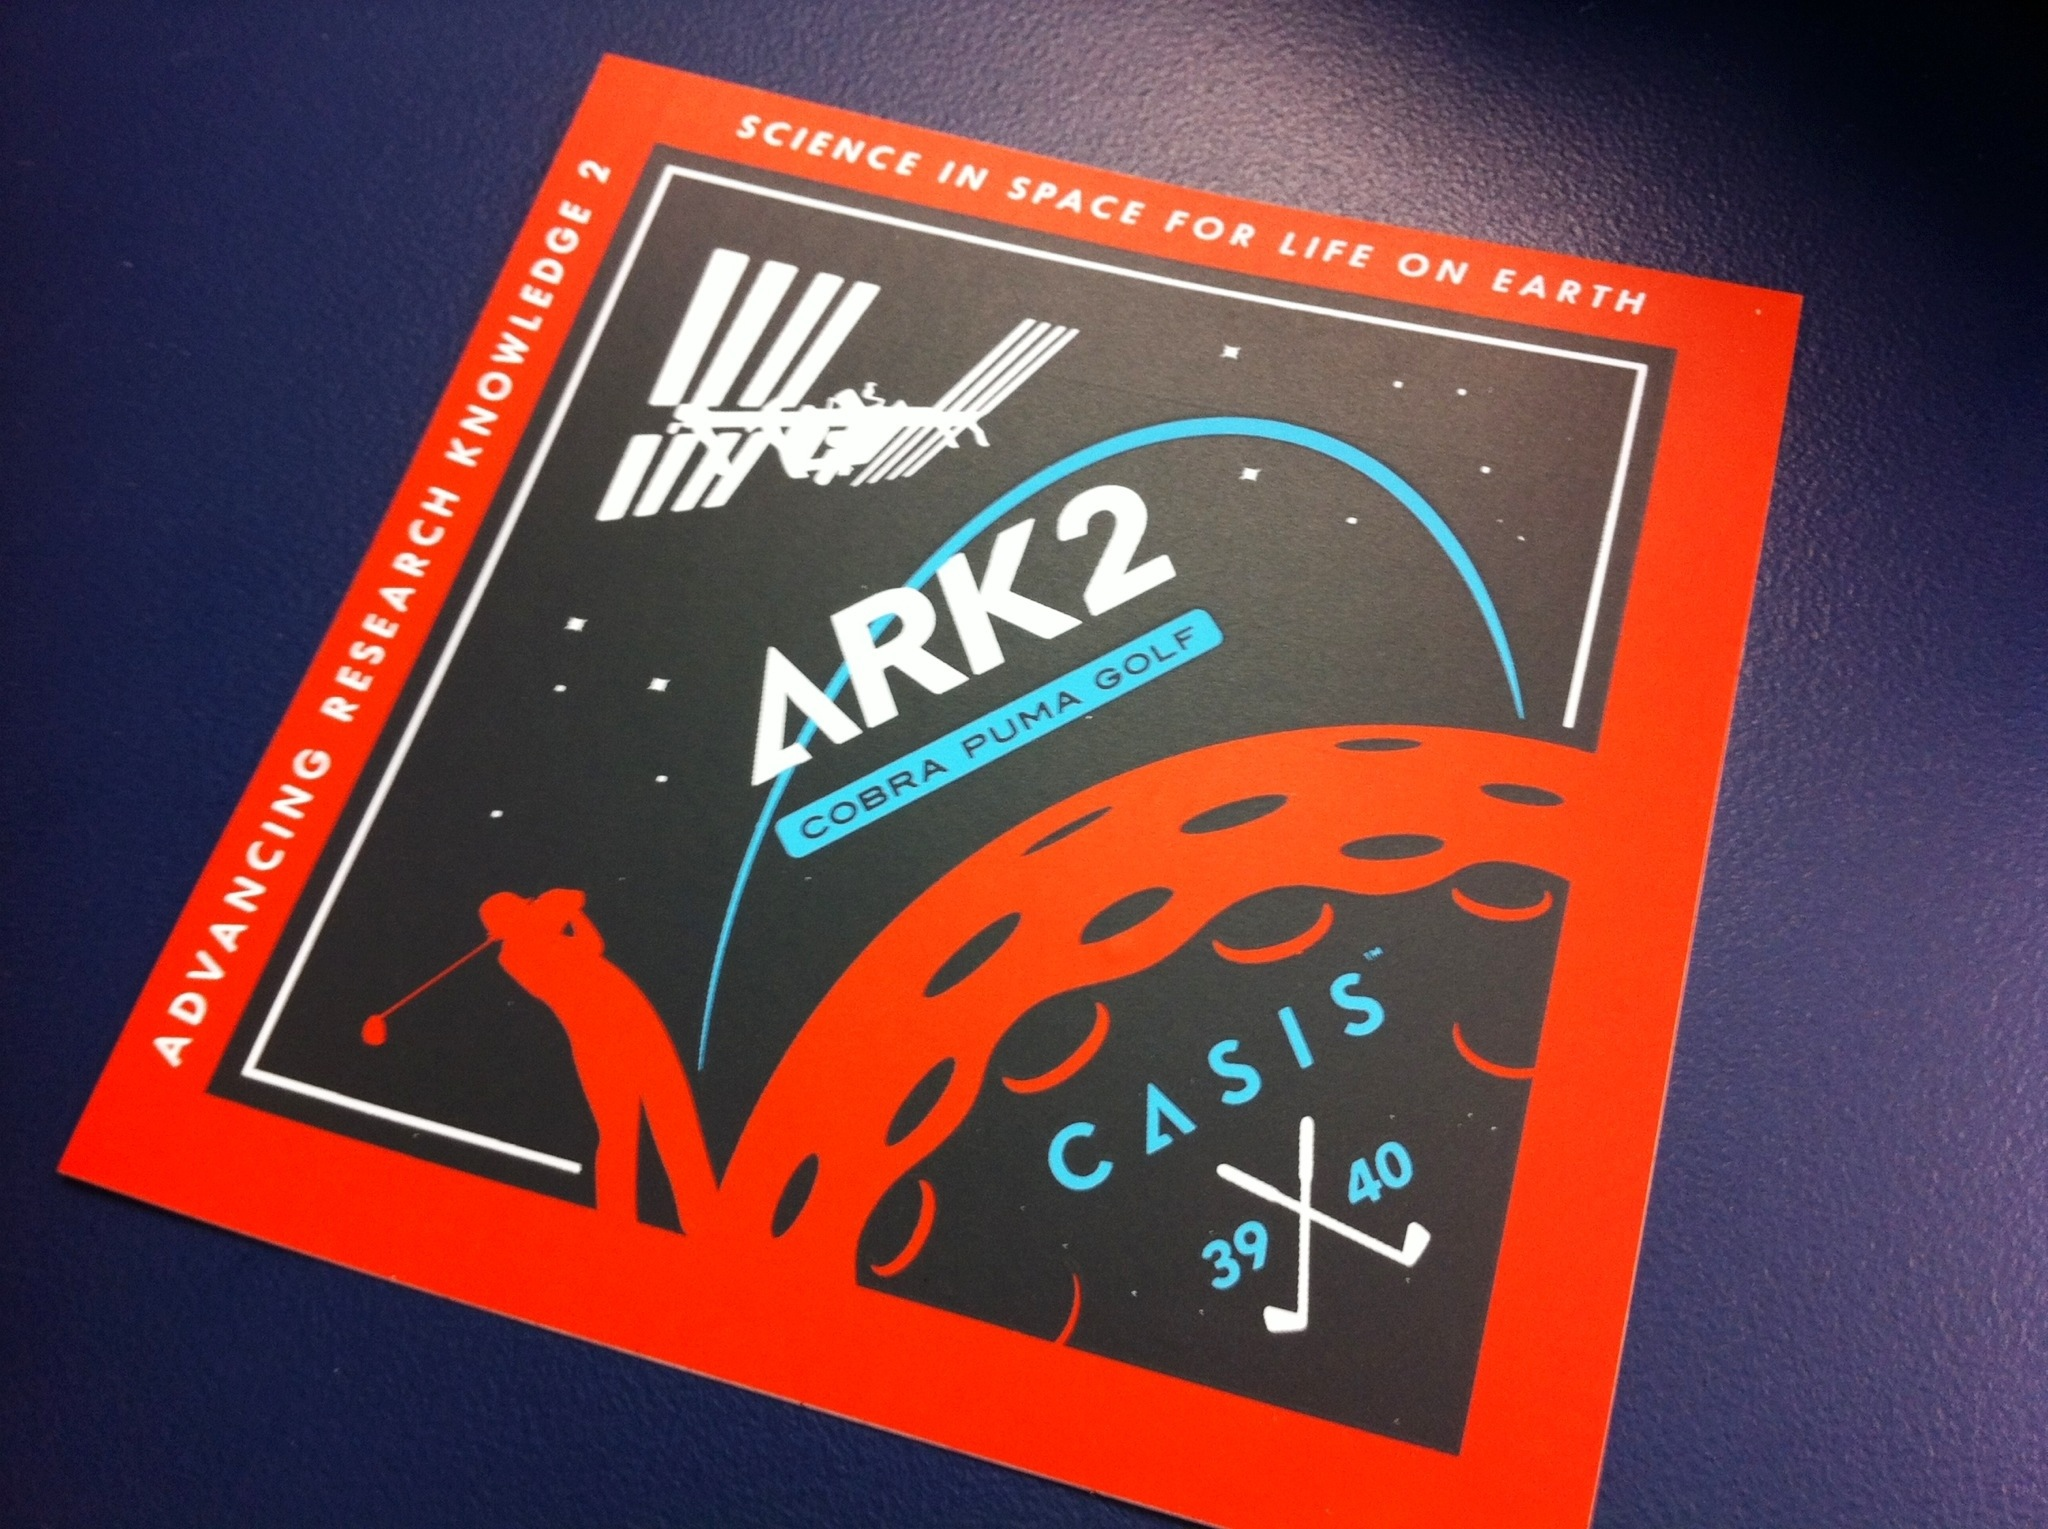 ARK2 CASIS Mission Logo Designed by Cobra-PUMA Golf #NASASocial, Sept. 2014